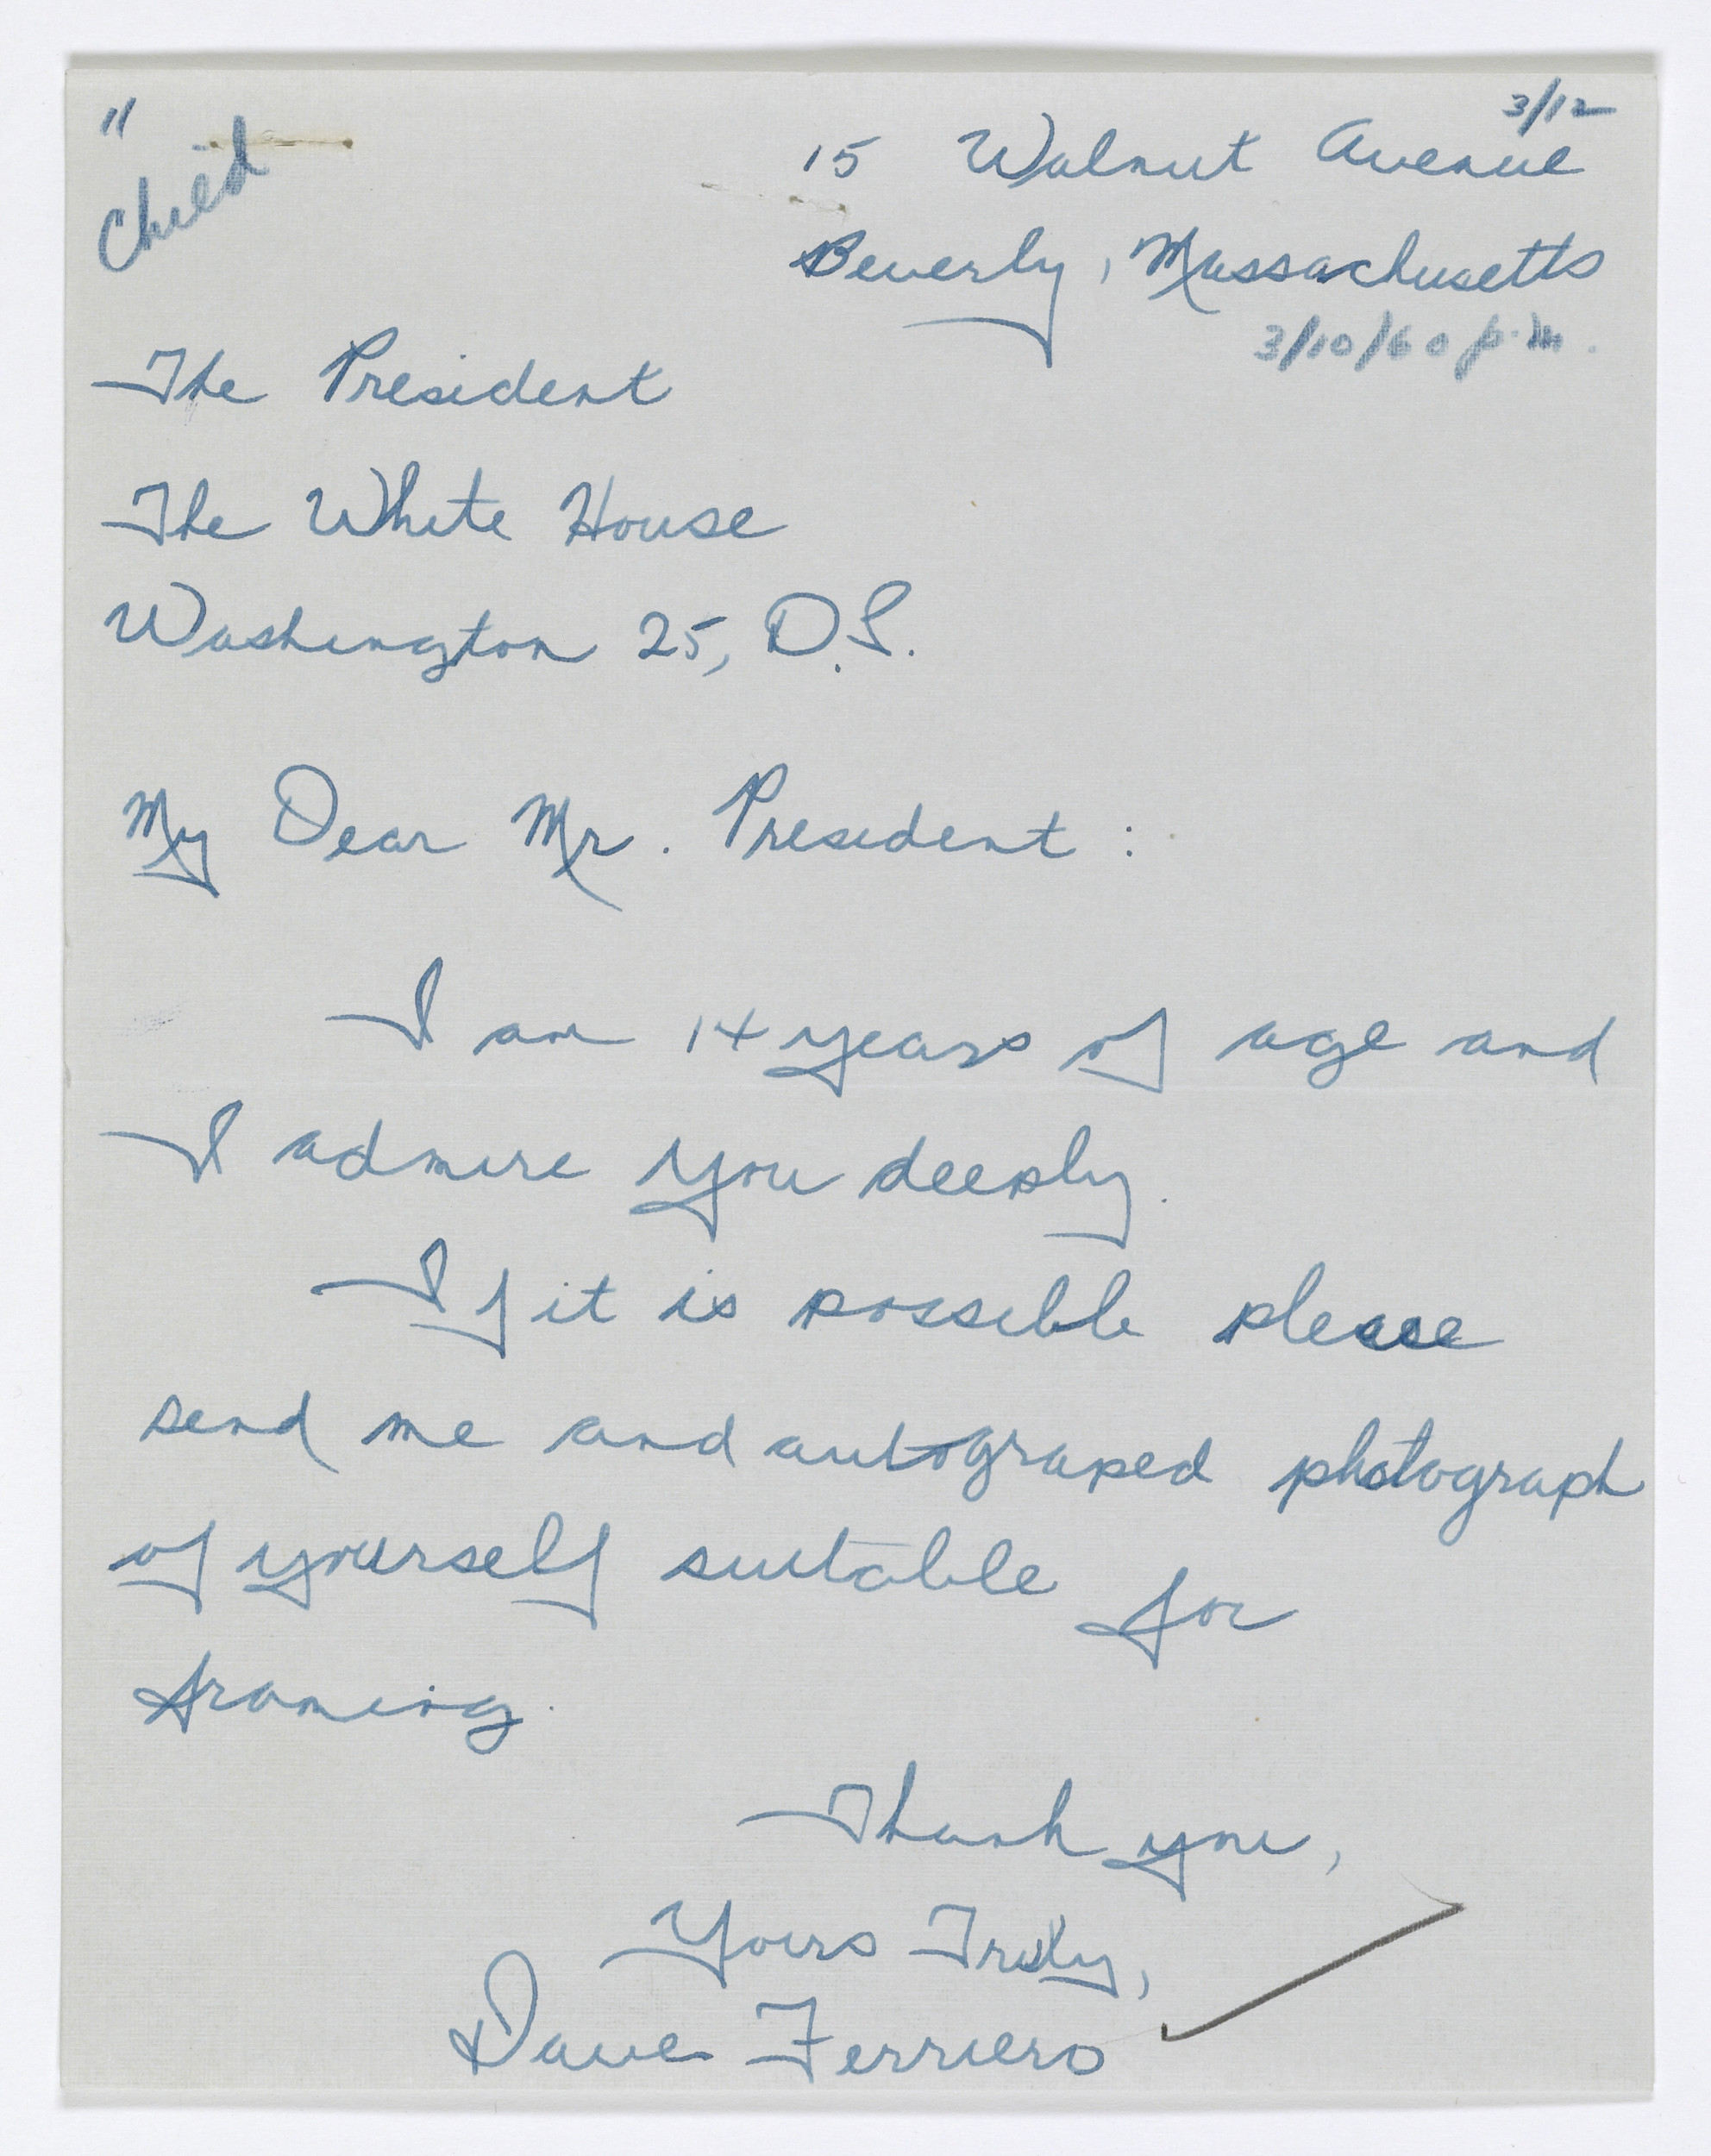 This is one of many letters Archivist of the United States David Ferriero wrote to the president as a boy. Letter from David Ferriero to President Eisenhower, 3/10/1960. From the Collection DDE-WHCF: White House Central Files (Eisenhower Administration).